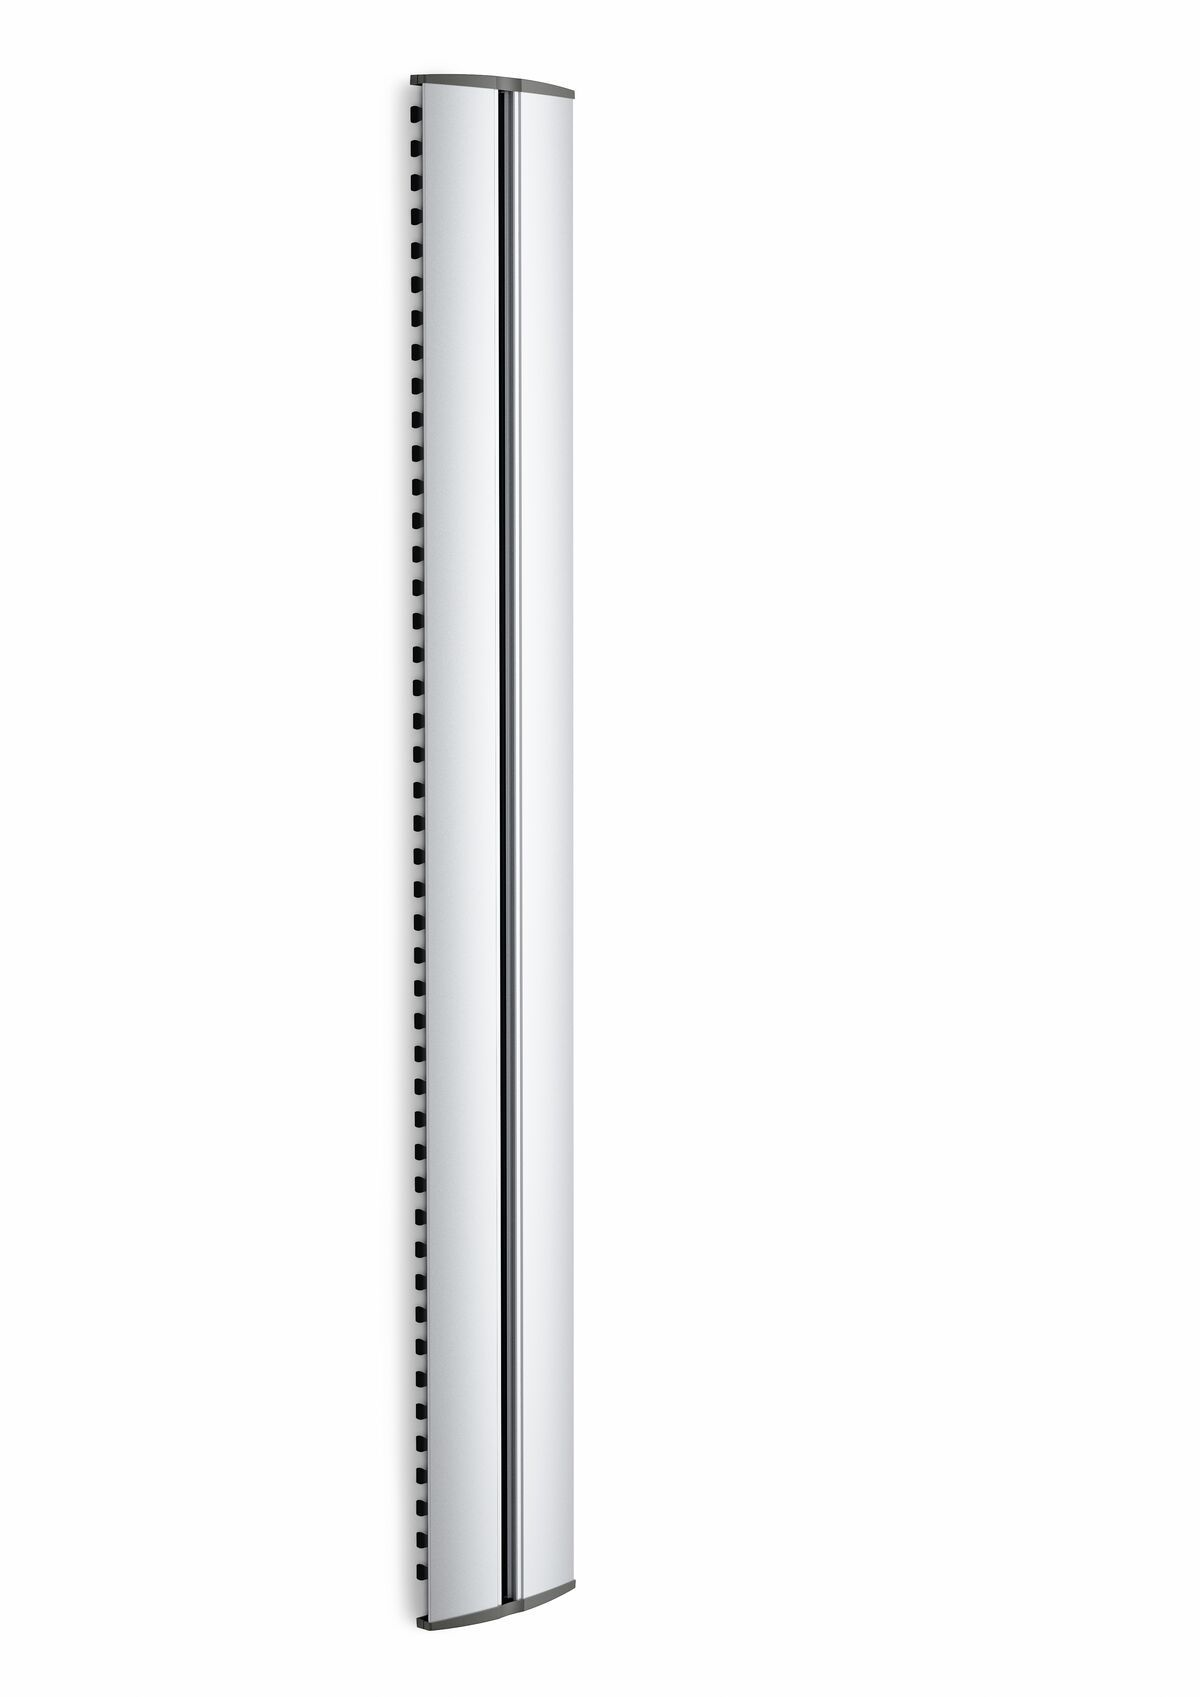 Vogel's CABLE 10 L Cable Column - Max. number of cables to hold: Up to 10 cables - Length: 94 cm - Product